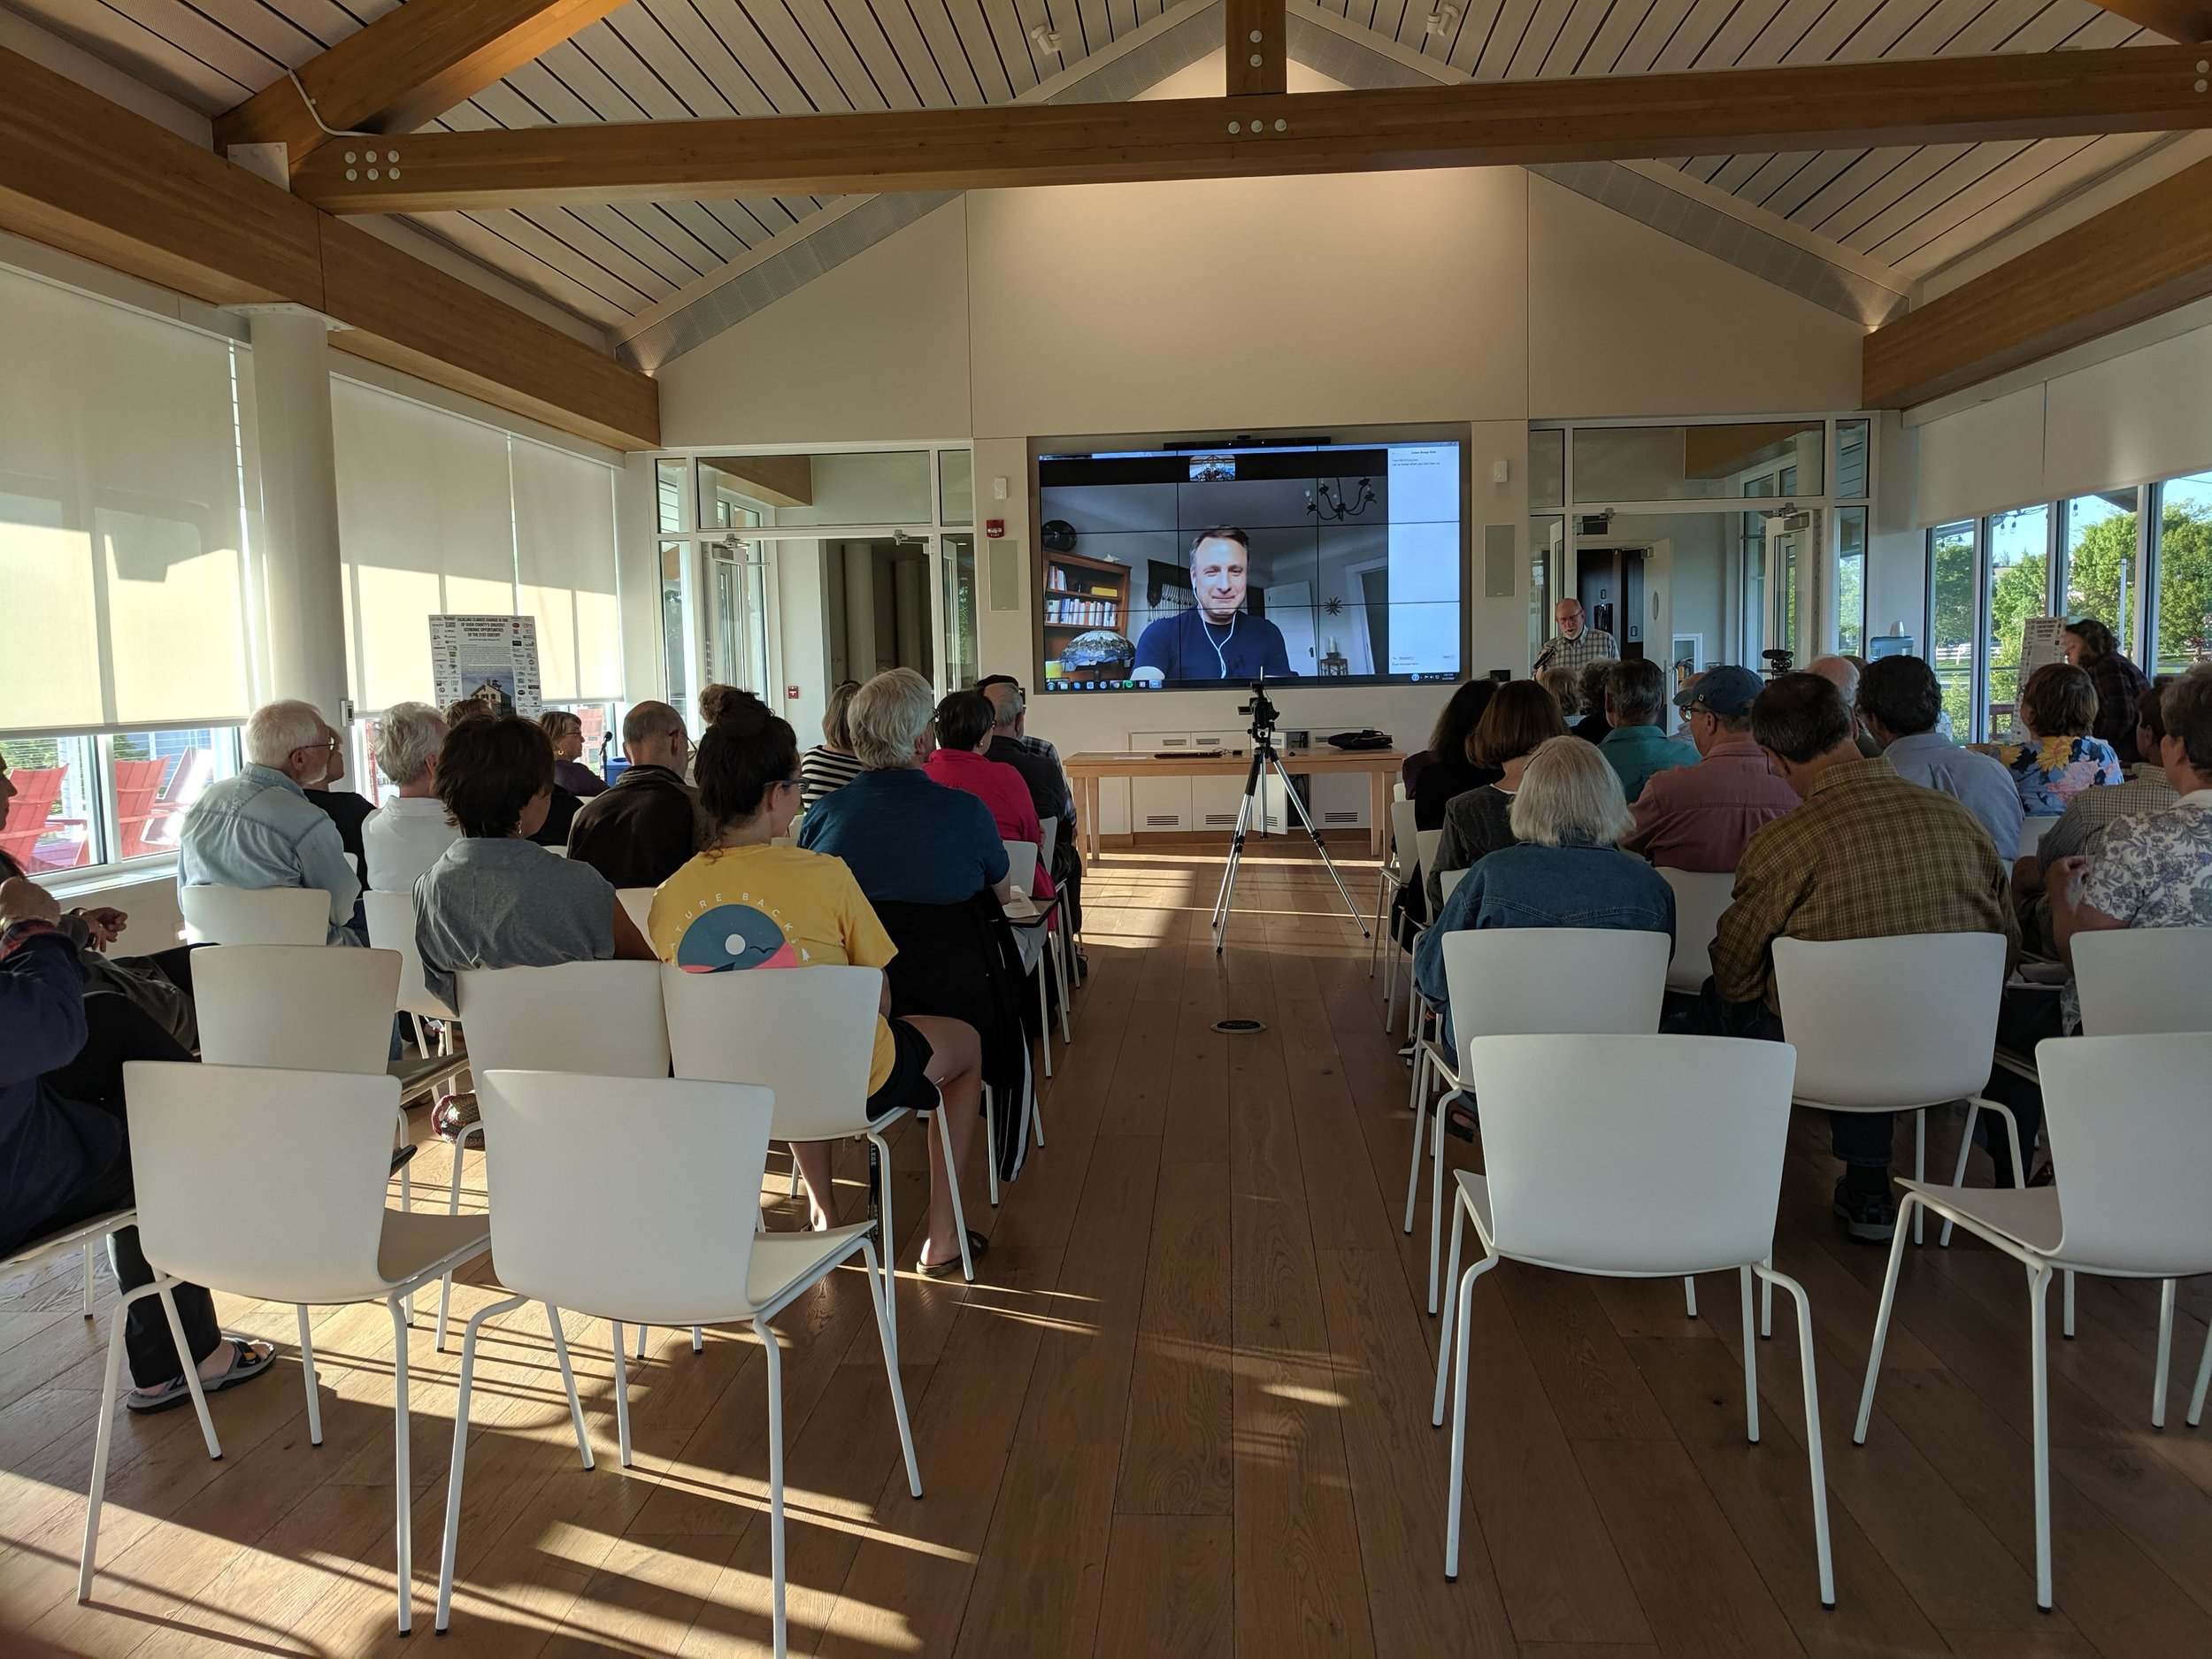 An introduction to Project Drawdown with Jonathan Foley via video conference at the Kress Pavilion In Egg Harbor, WI on June 17, 2019.